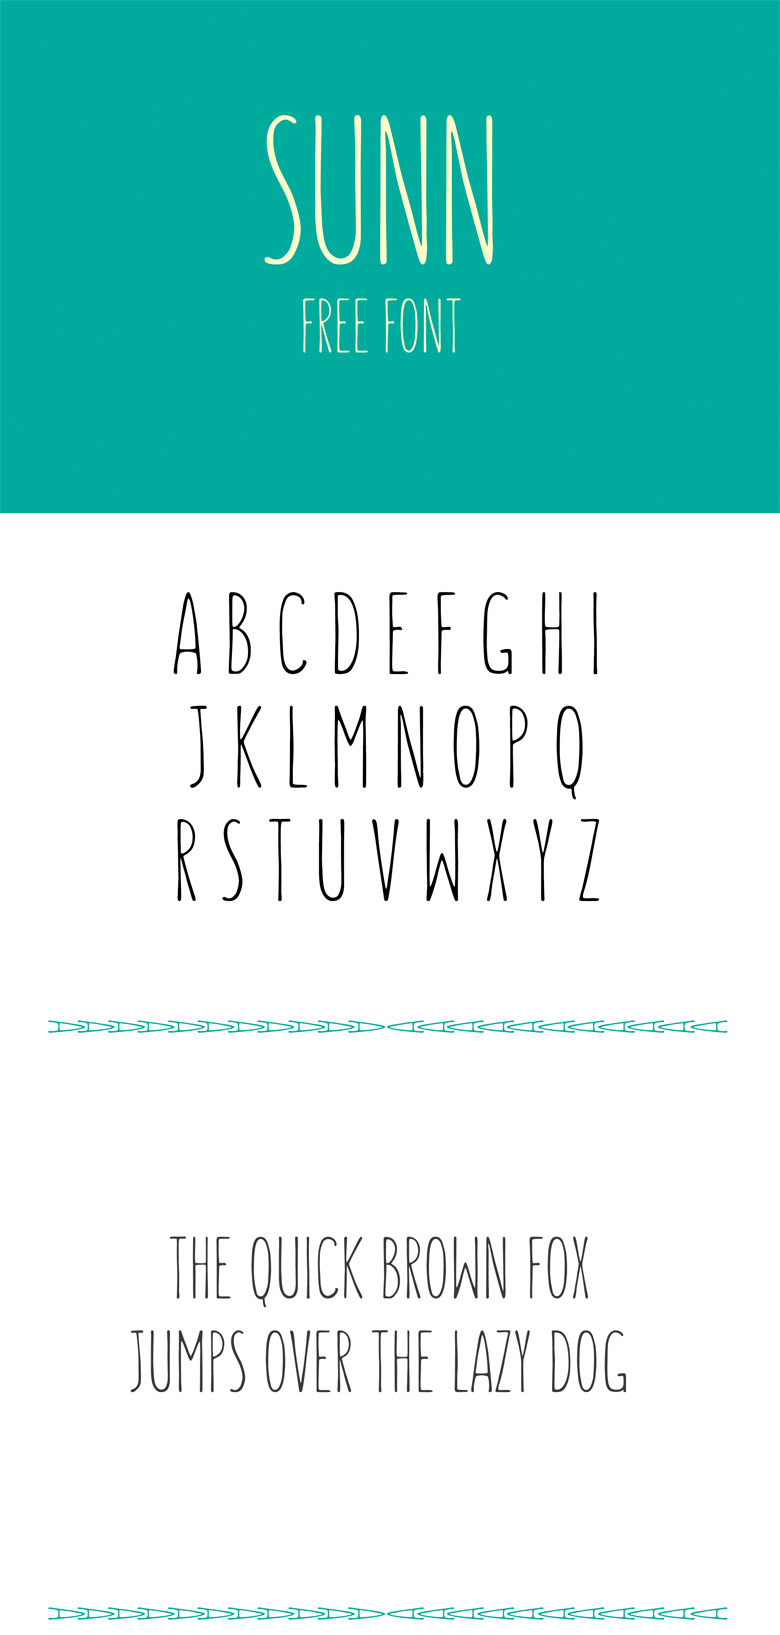 Beautiful free fonts for designers - Sunn